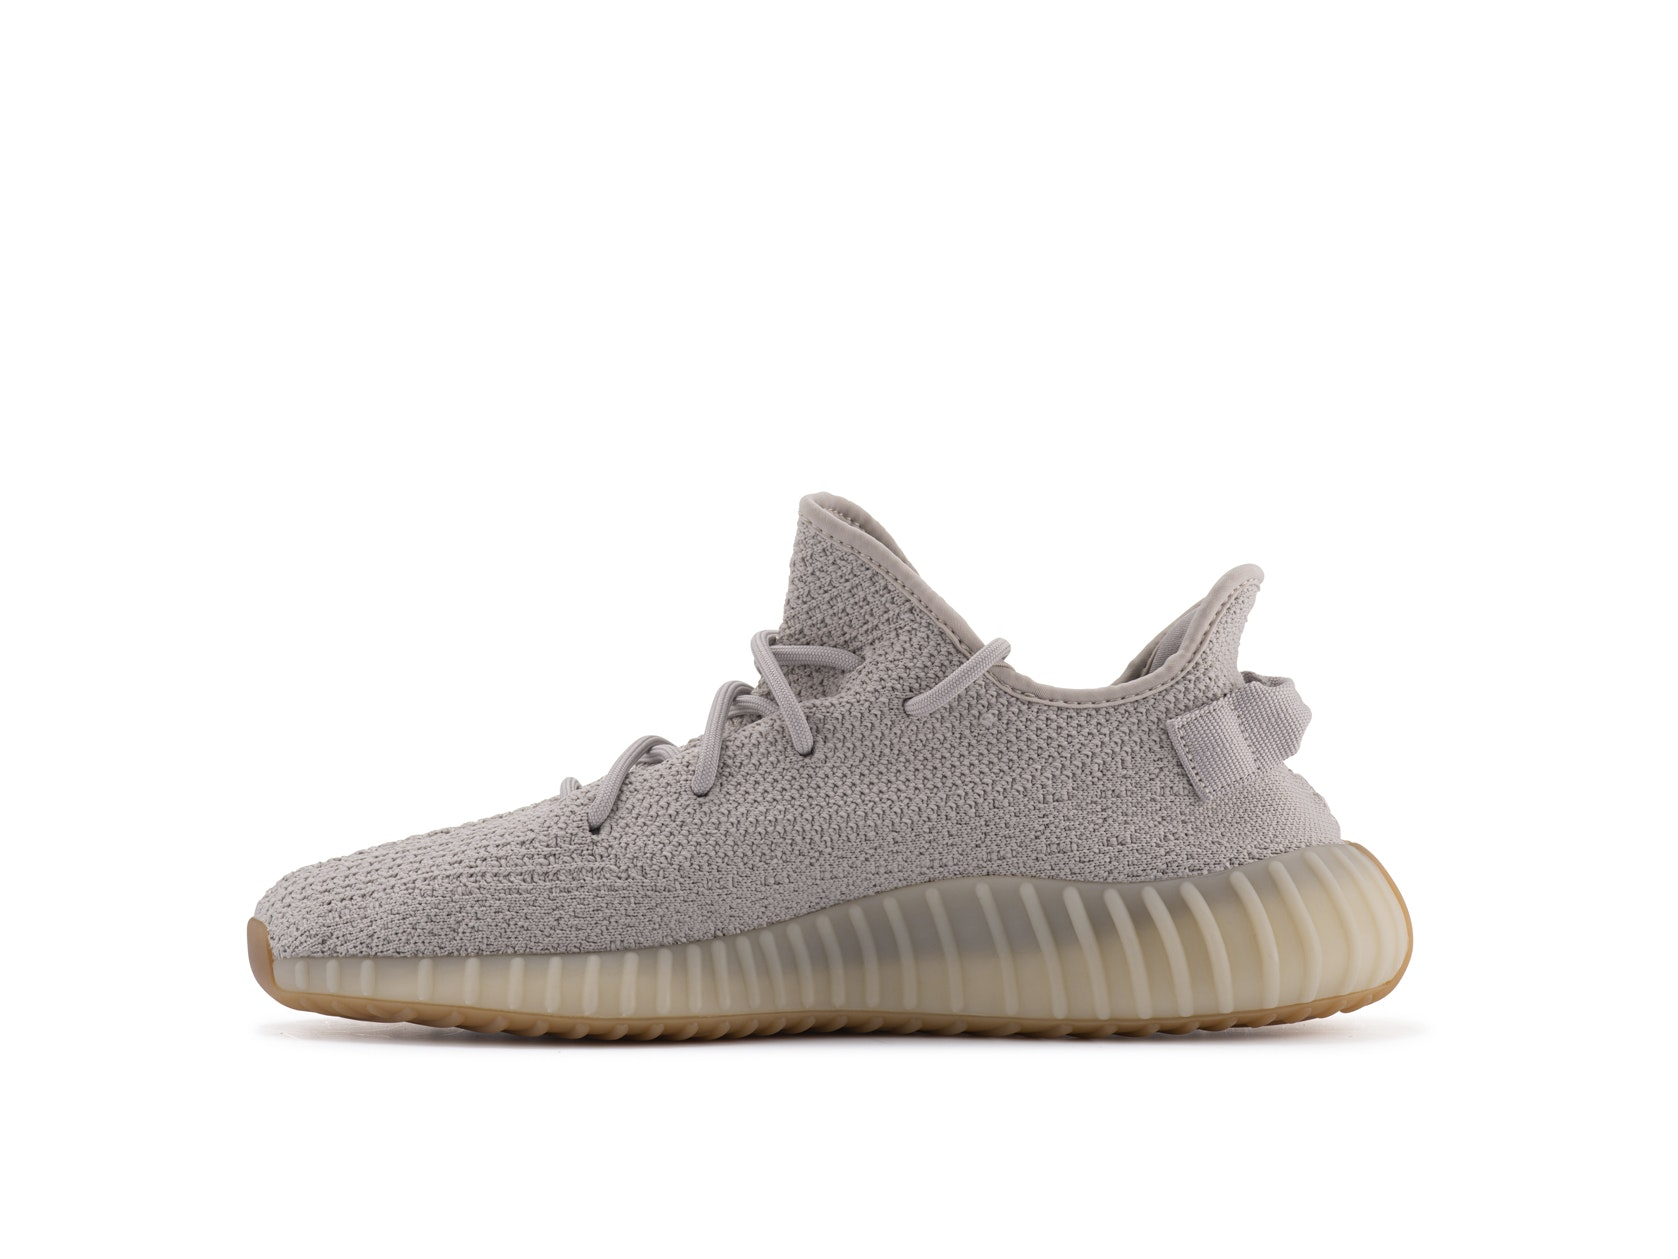 db16e3cfa8aa7 Yeezy Boost 350 V2 Sesame. 100% AuthenticAvg Delivery Time  1-2 days. Adidas    F99710